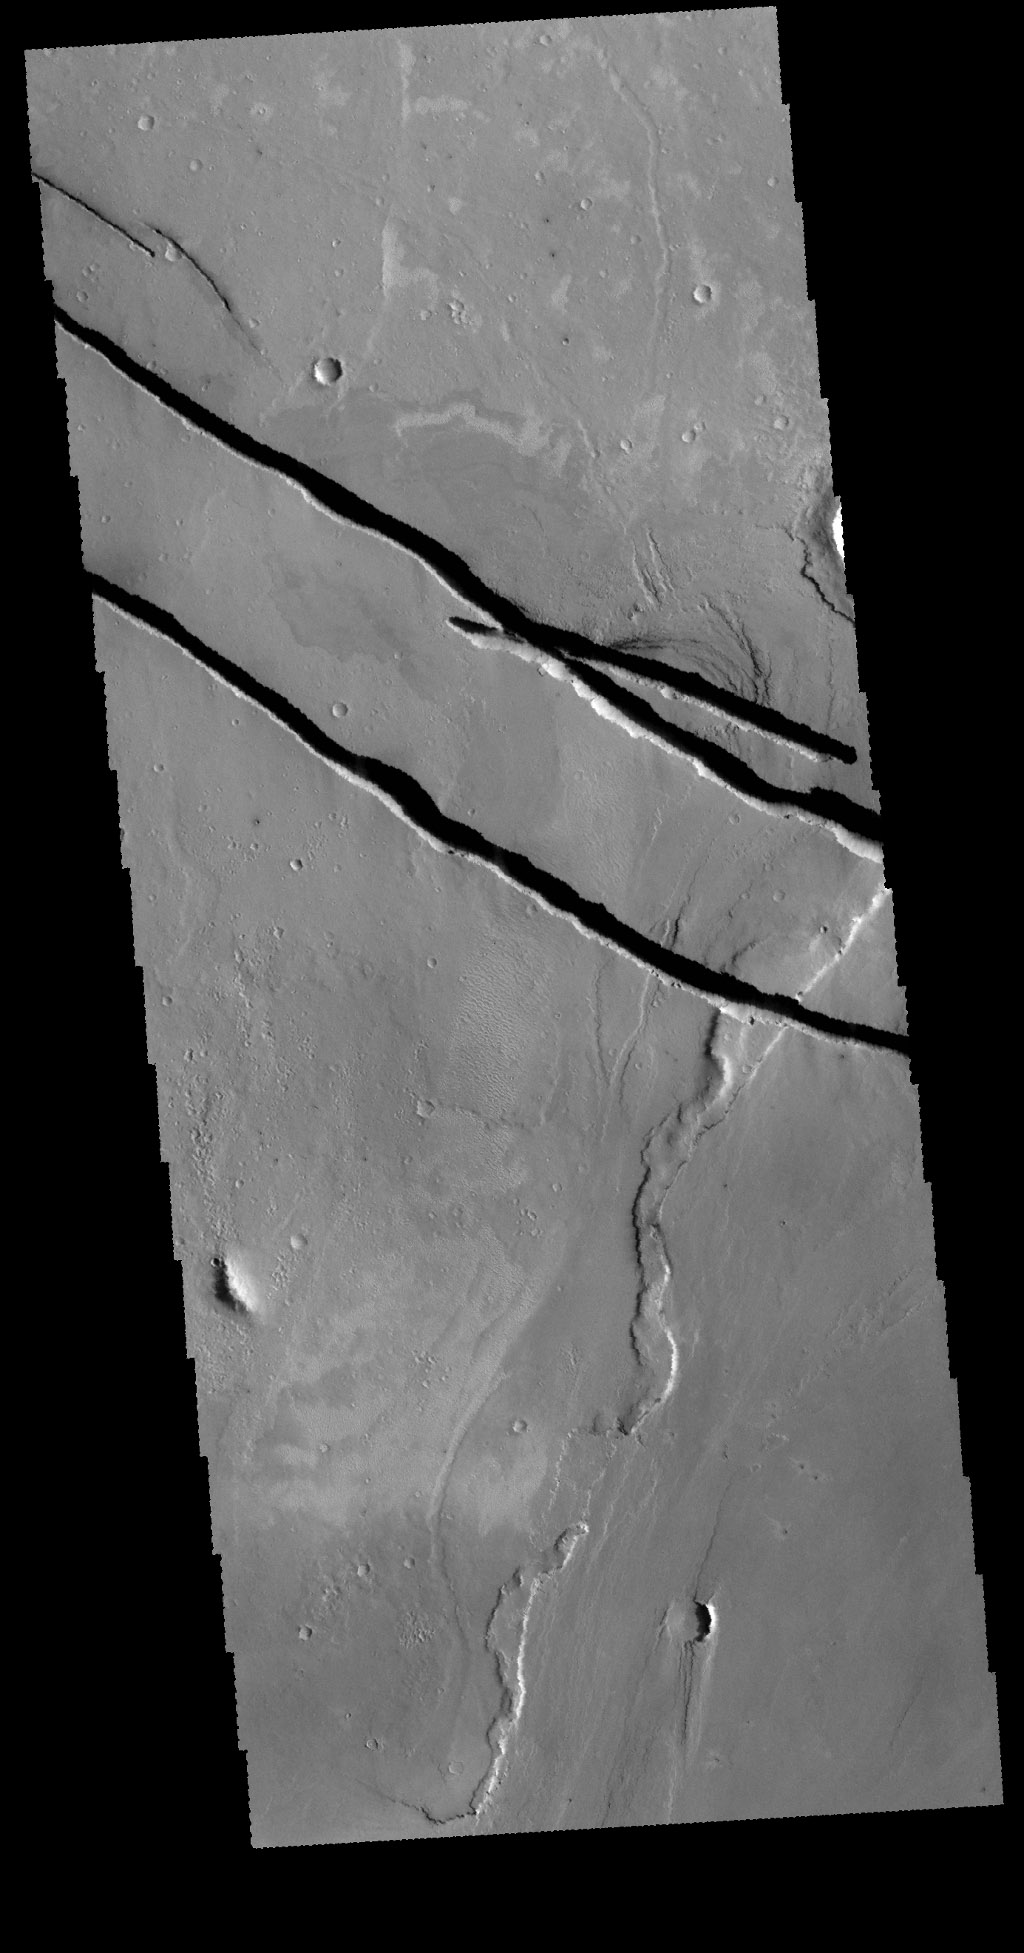 This image captured by NASA's 2001 Mars Odyssey spacecraft shows a portion of Cerberus Fossae.